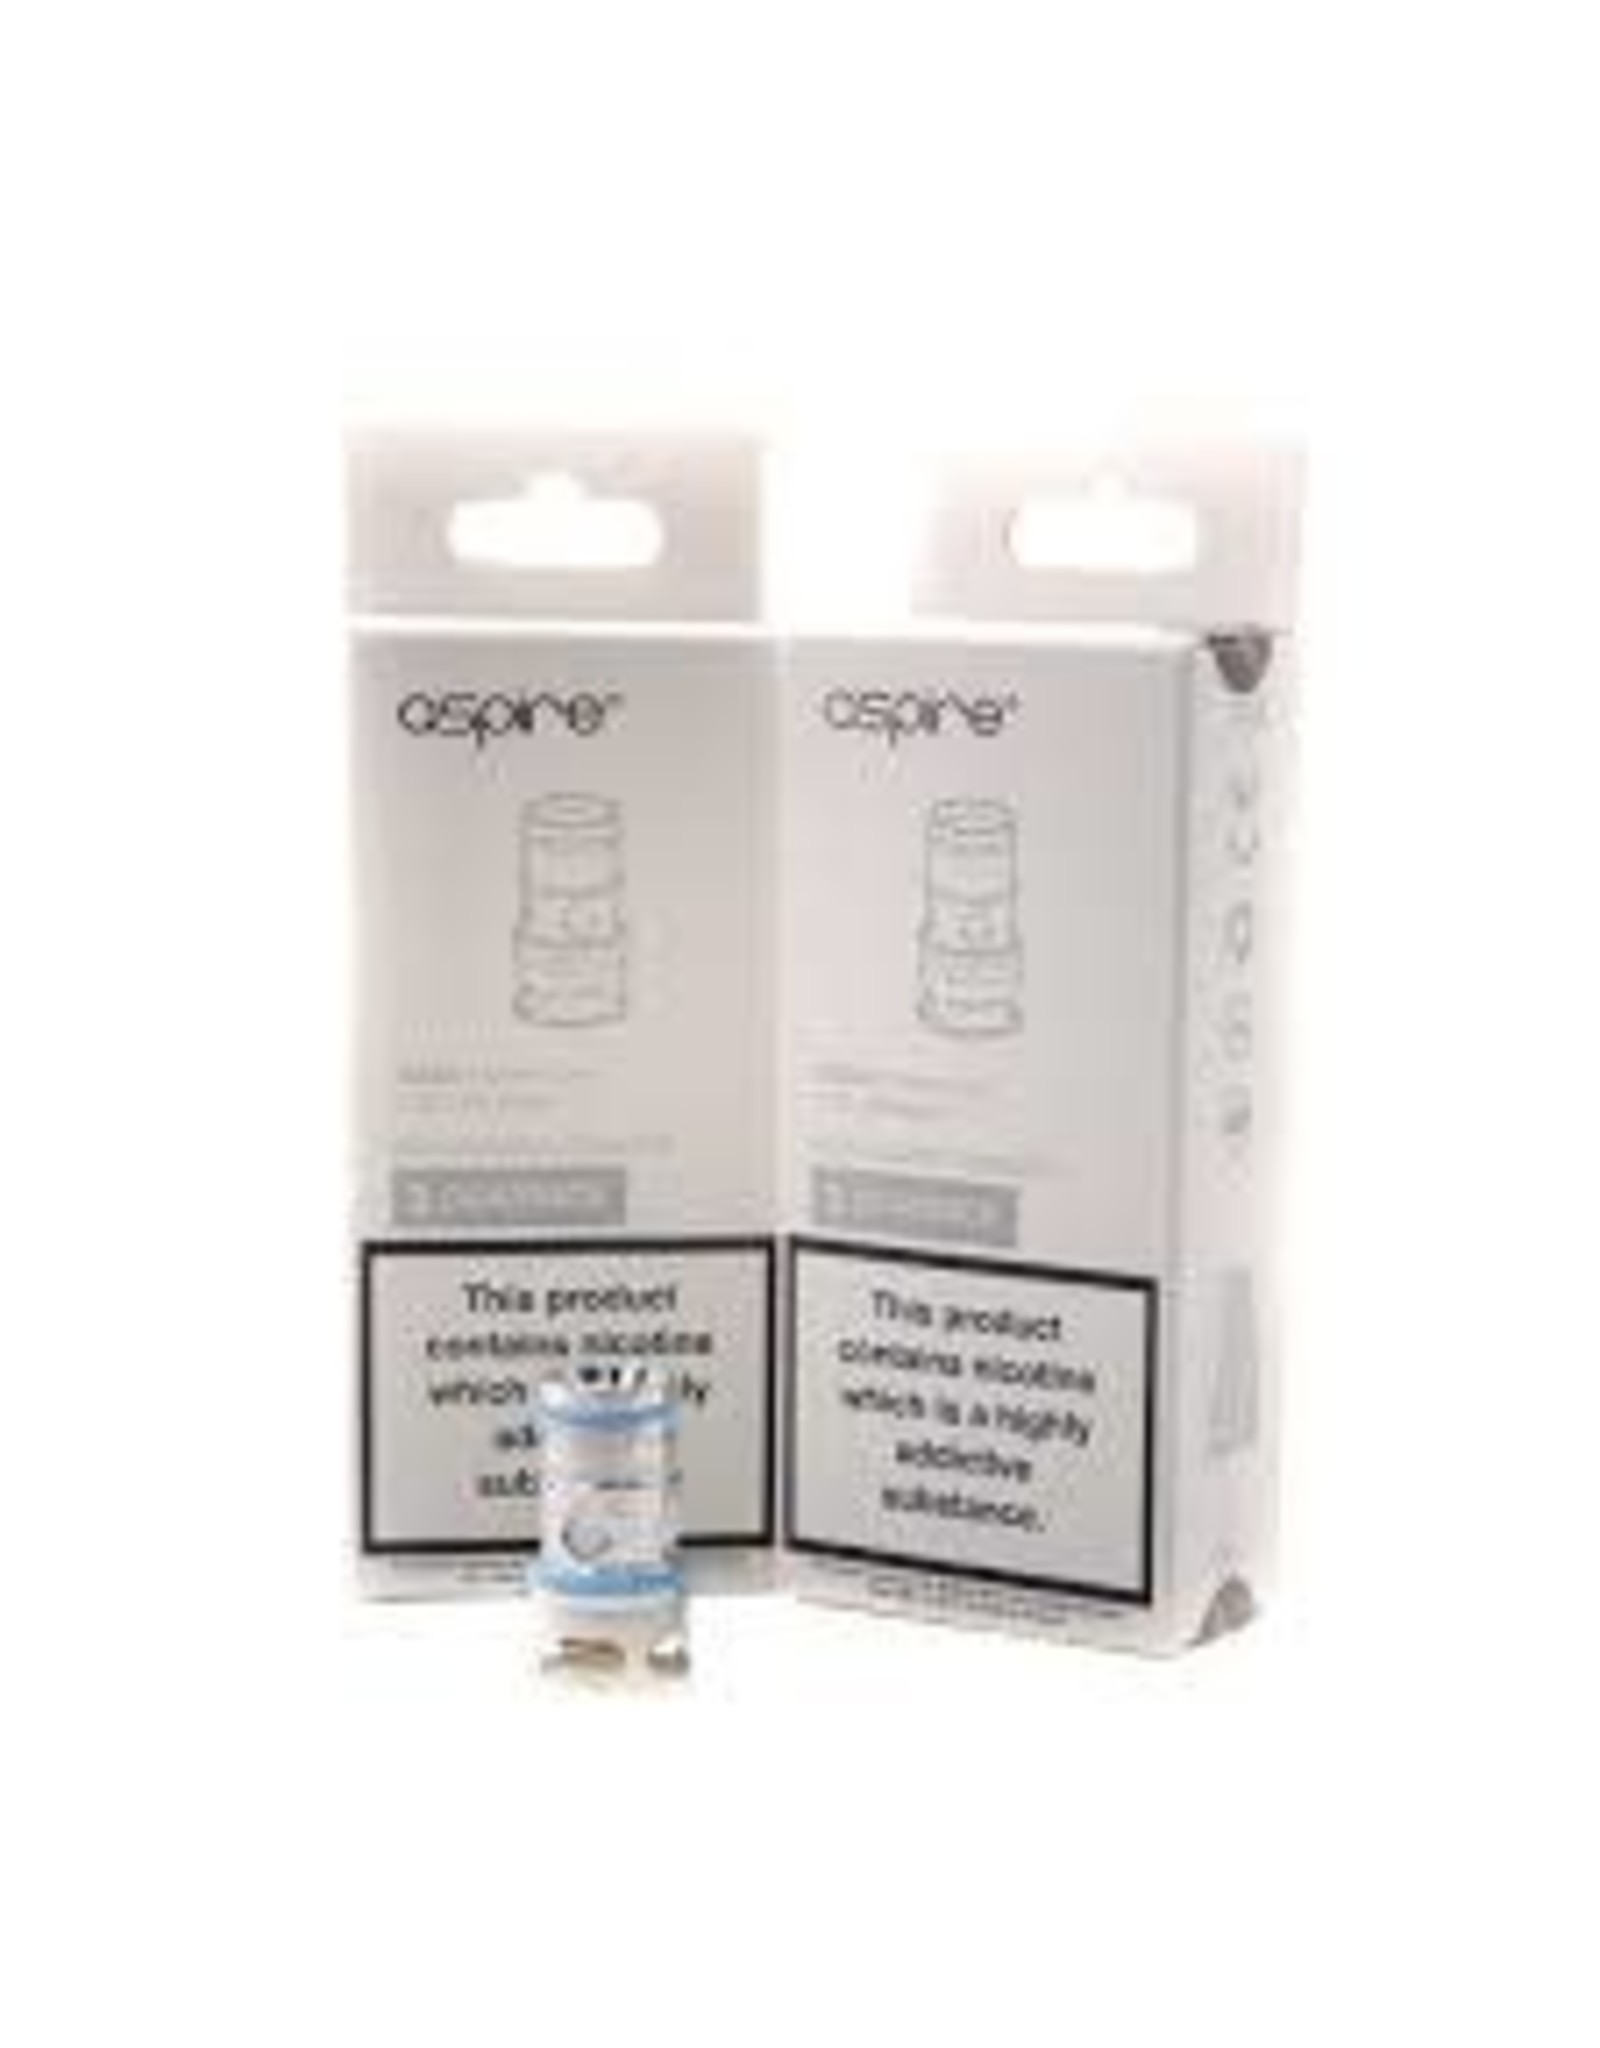 ASPIRE ASPIRE ODAN COIL 0.2 OHM  MESH (50-60W) single